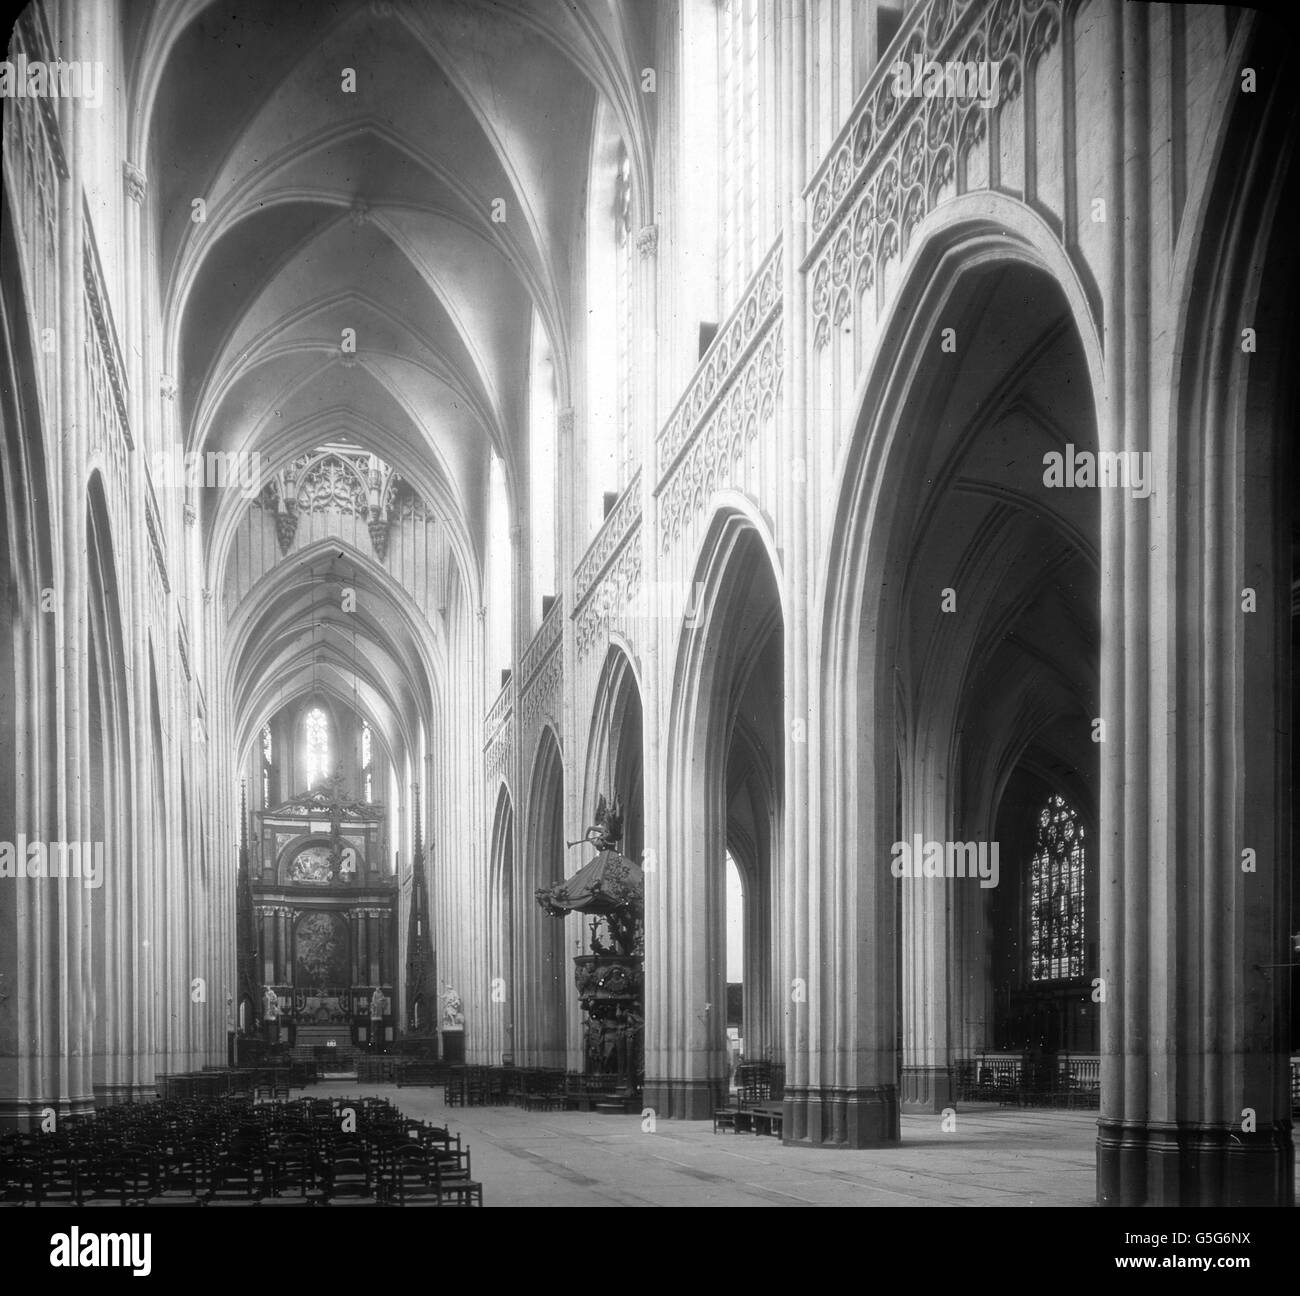 Inside The Antwerp Cathedral Black And White Gothic Architecture Pillar Columns Chairs Europe Belgium Travel History Historical 1910s